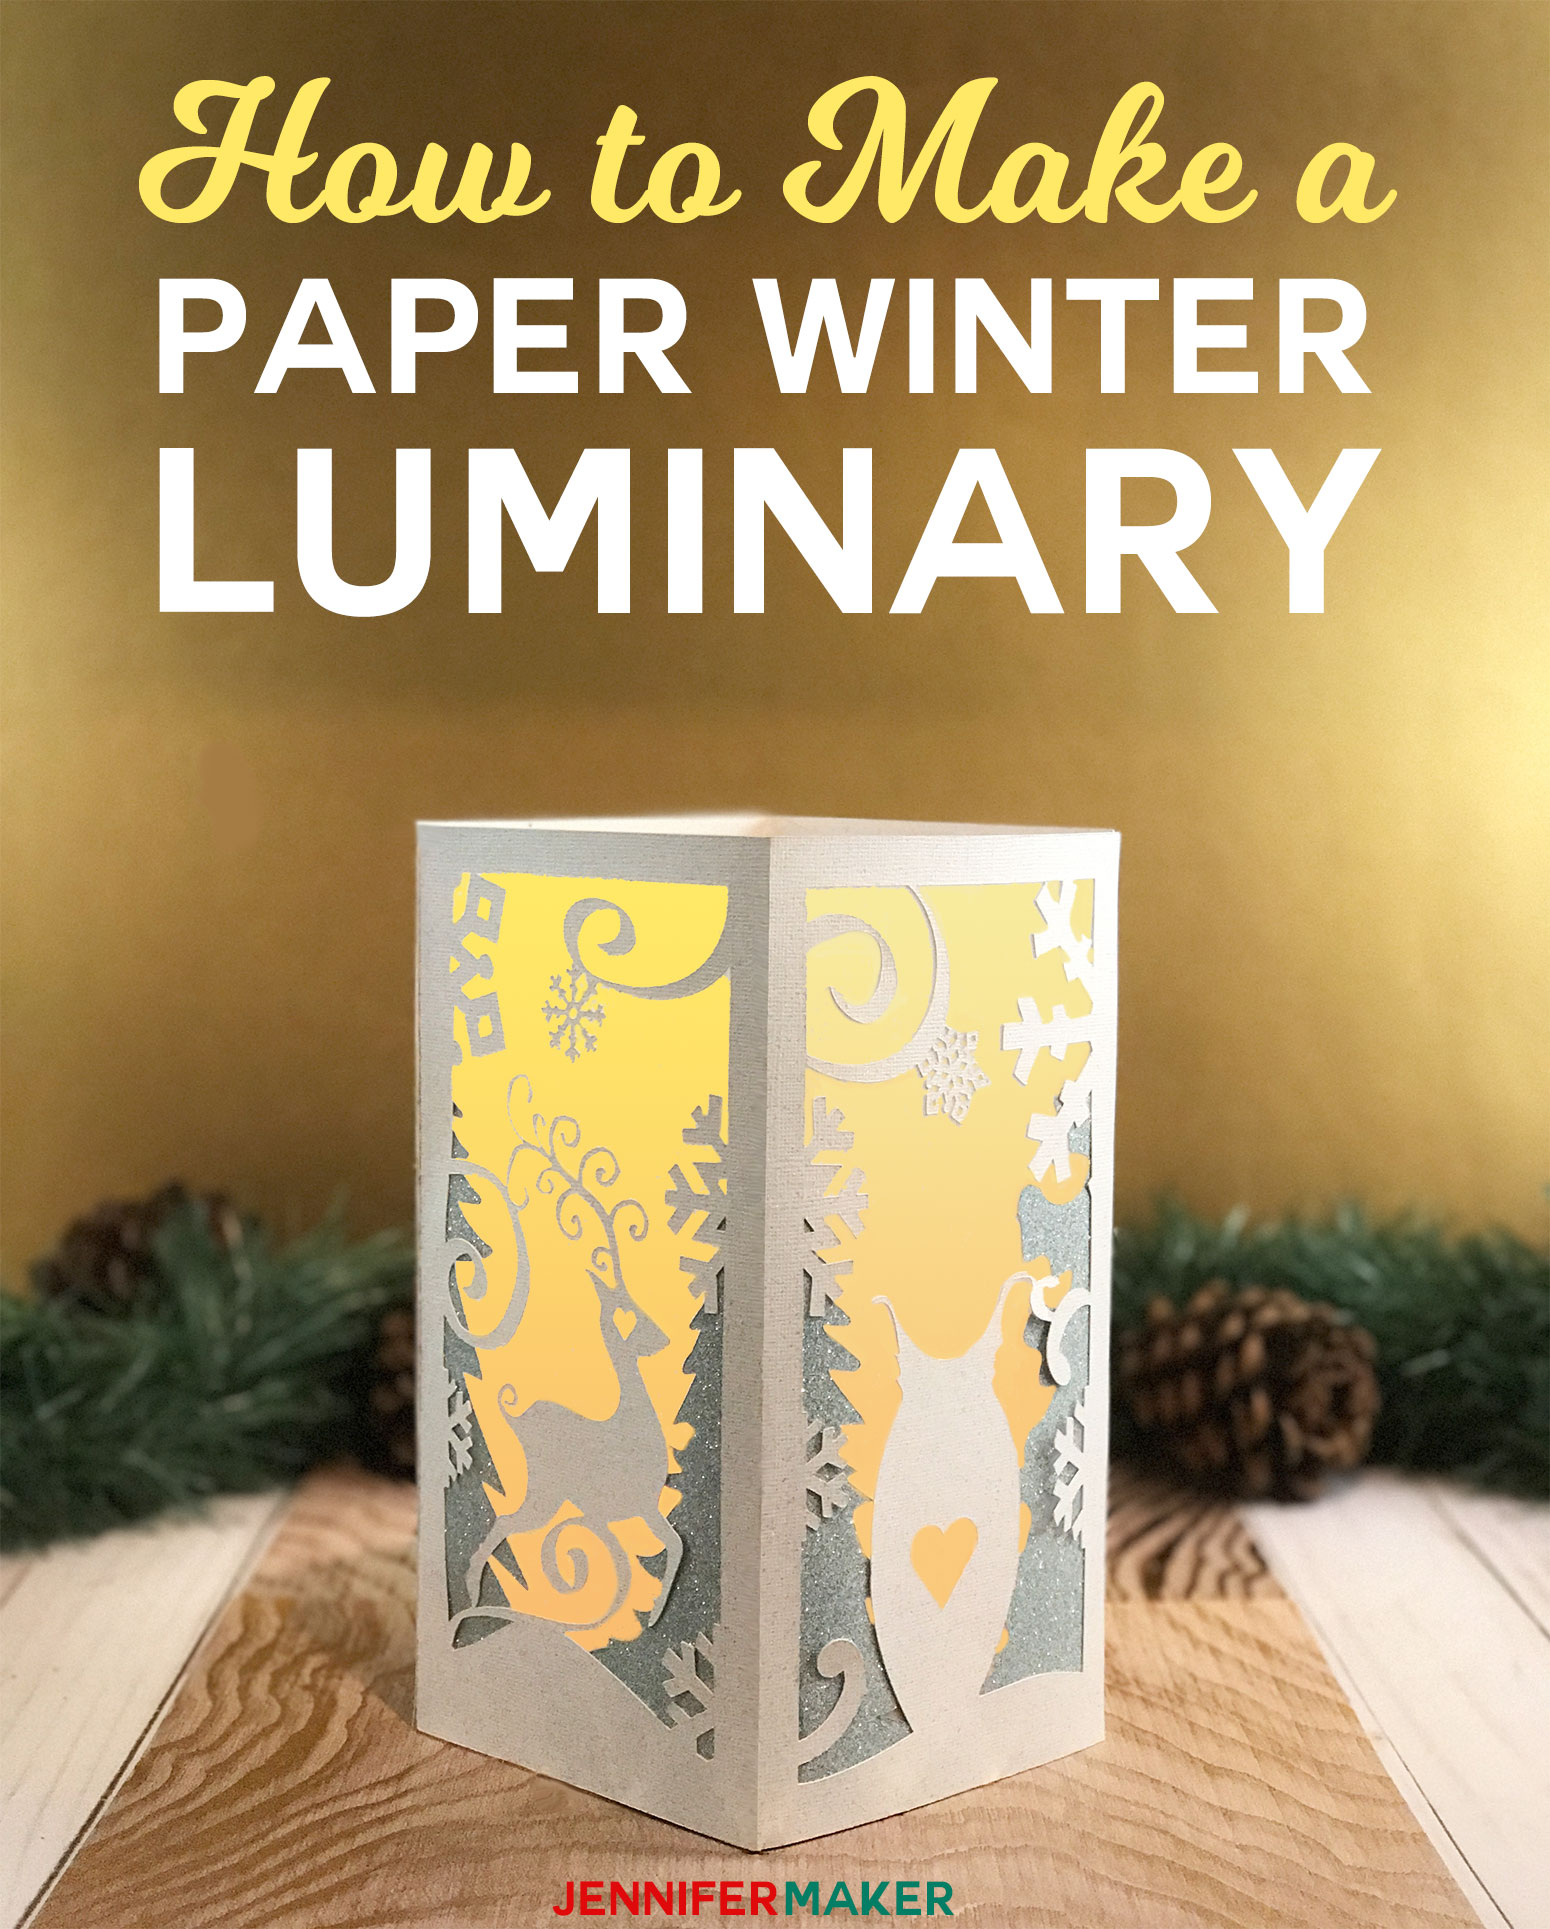 How to Make a Paper Lantern & Luminary for Winter | Animal Friends and Snow | Cricut Silhouette SVG Cut File | Luminary Tutorial